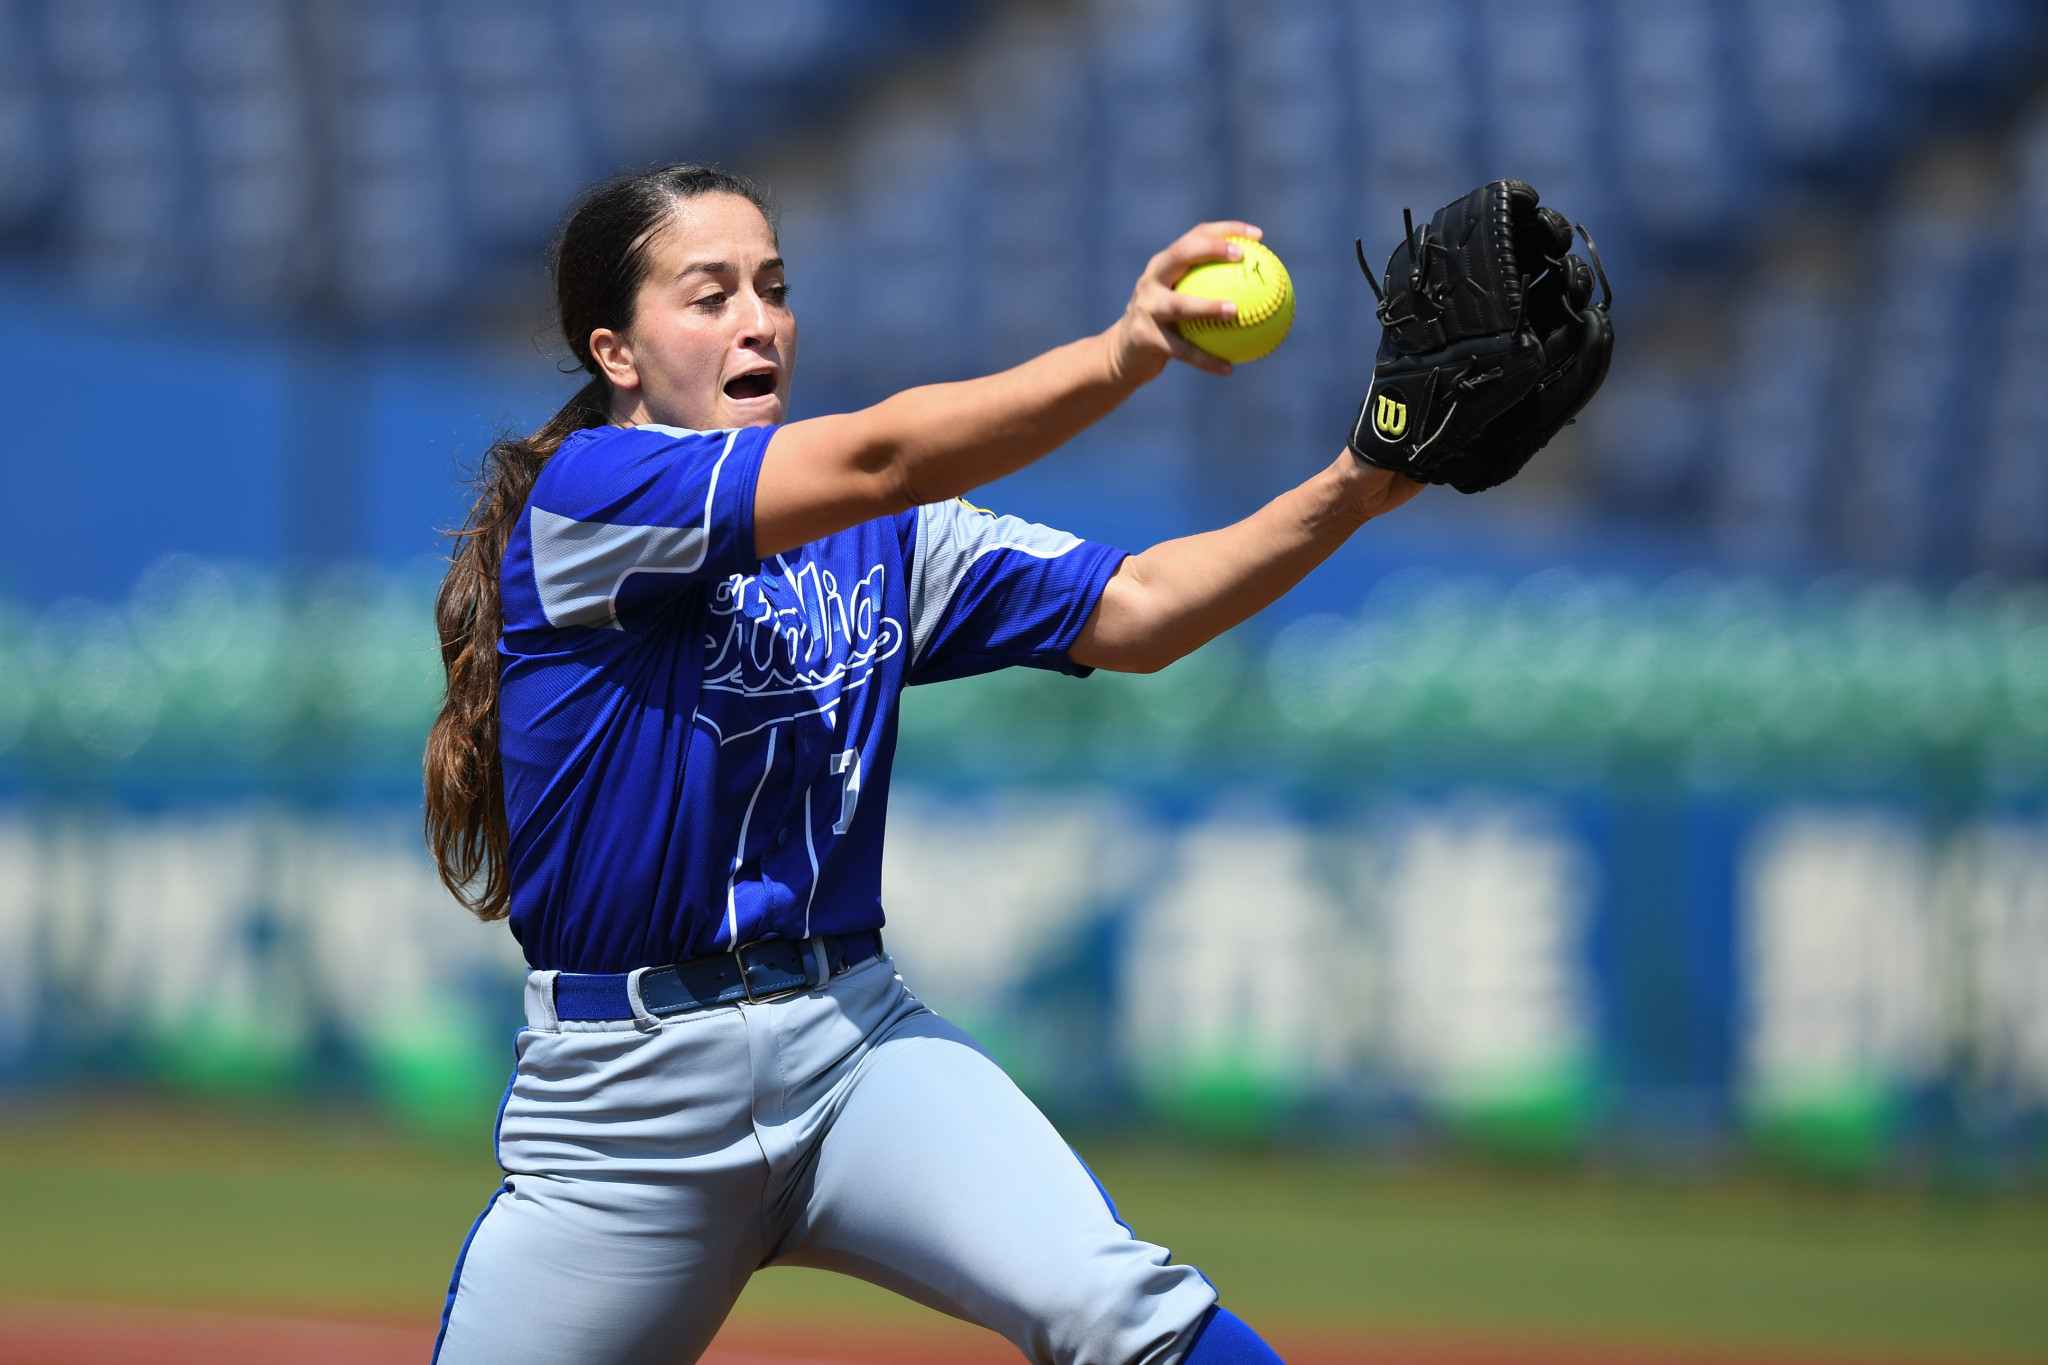 European champions Italy name softball roster for Tokyo 2020